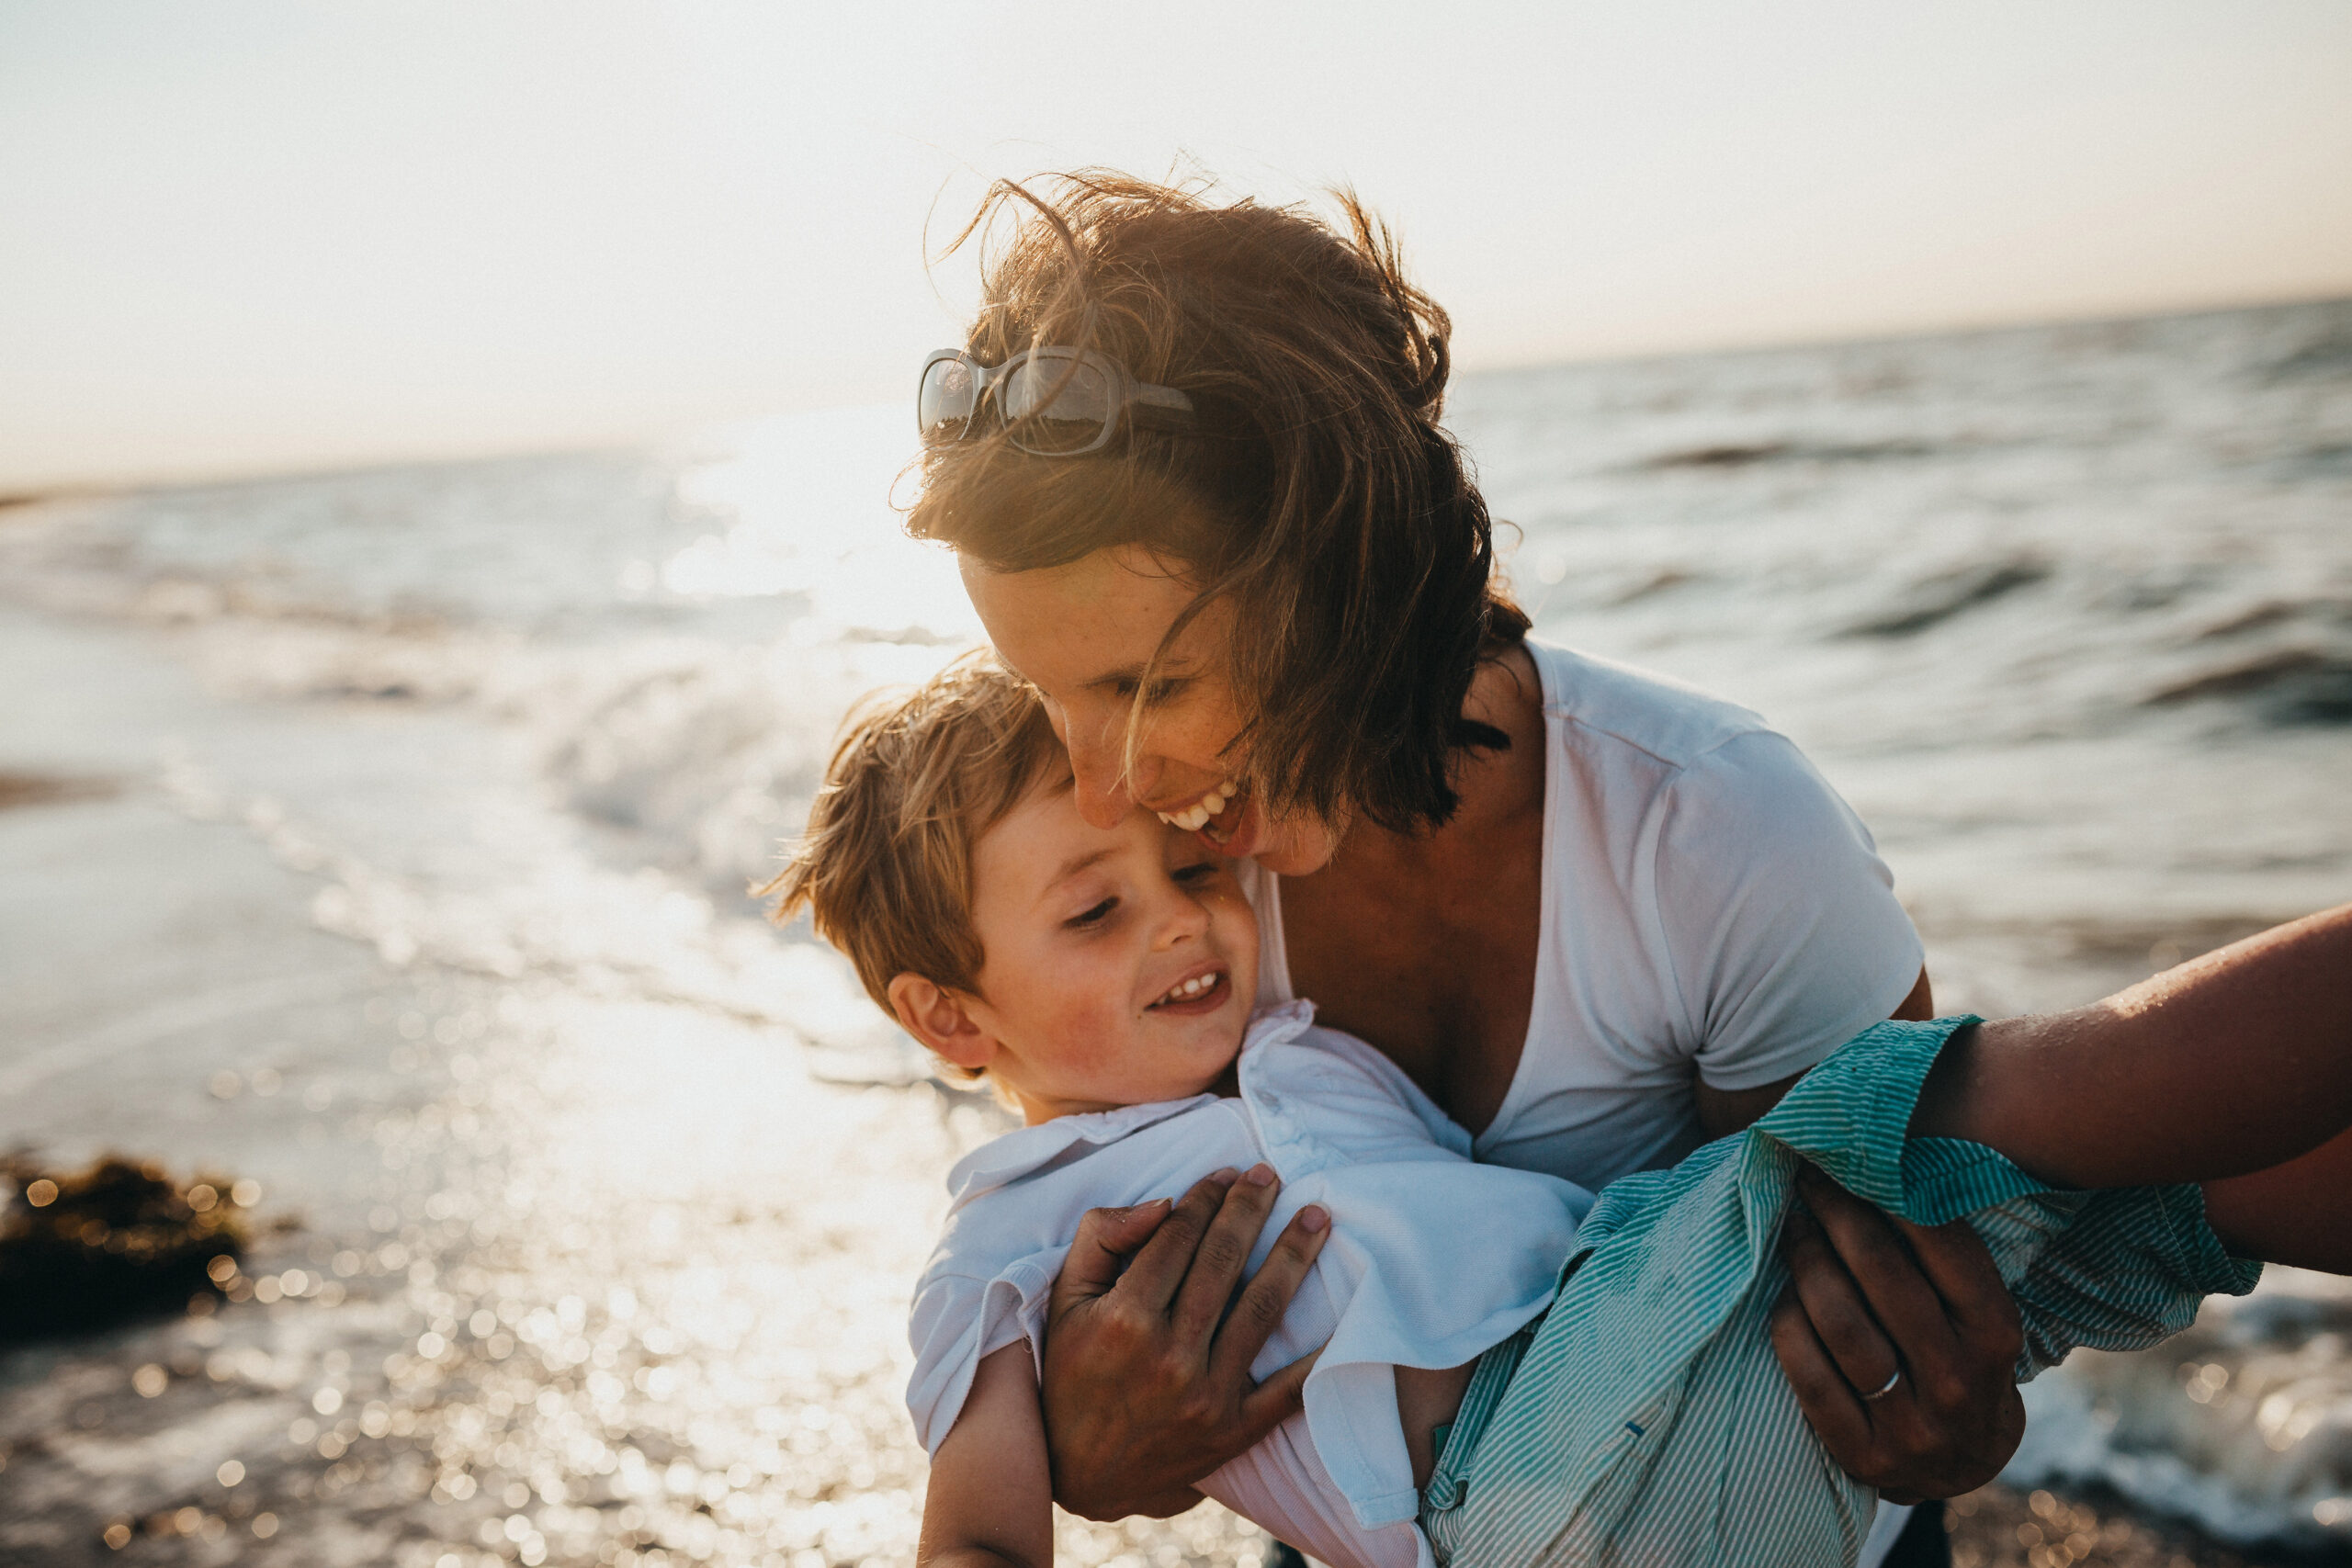 043-caucasian-mother-son-happy-hugging-on-beach